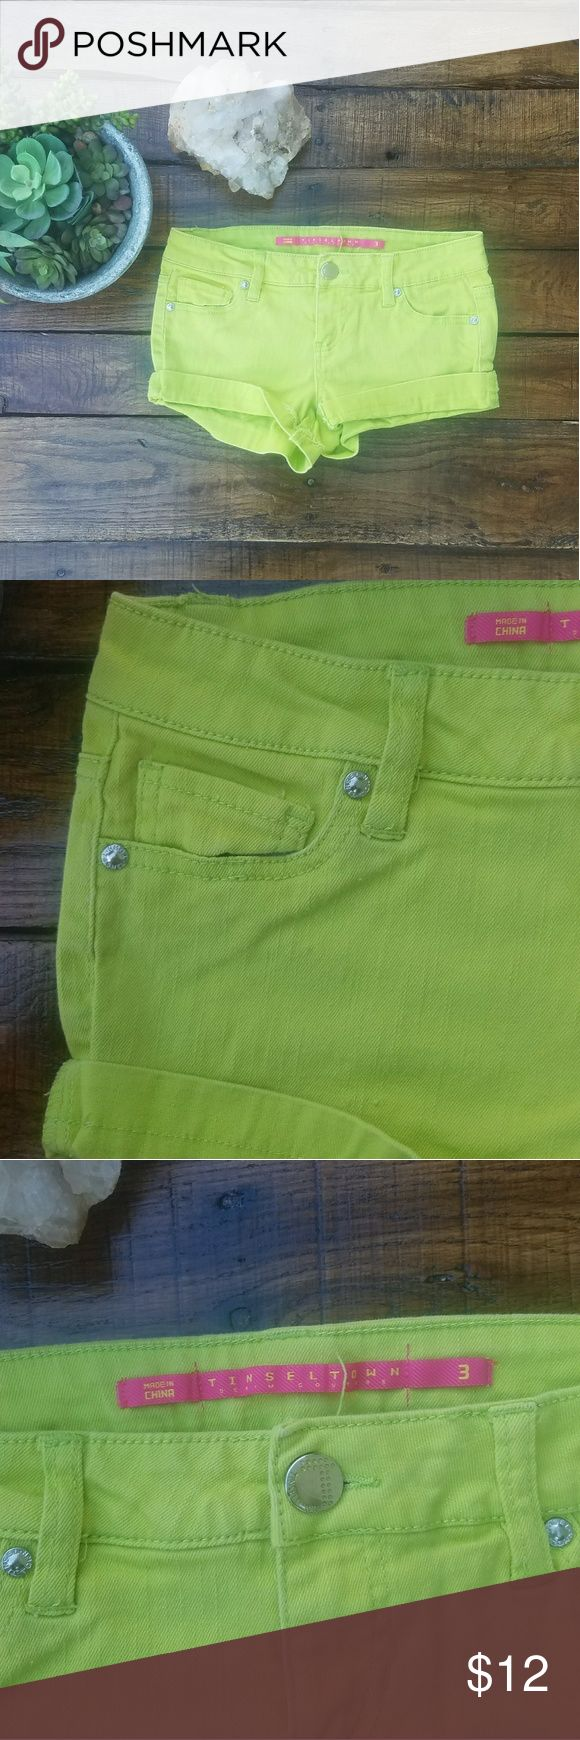 Tinseltown Lime Green Jean Shorts Add a pop of color to any outfit with these lime green shorts! **Last two pictures are for styling purposes** SIZE: 3 (Juniors) BRAND: Tinseltown  COLOR: Lime Green USAGE: Never Worn  MEASUREMENTS: (Inches) WAIST: 14 RISE: 8 1/2  LEG OPENING: 9 LENGTH: 9 1/2  **Please see my post with the diagrams of how measurements are taken** Bundle & save on shipping Shorts Jean Shorts